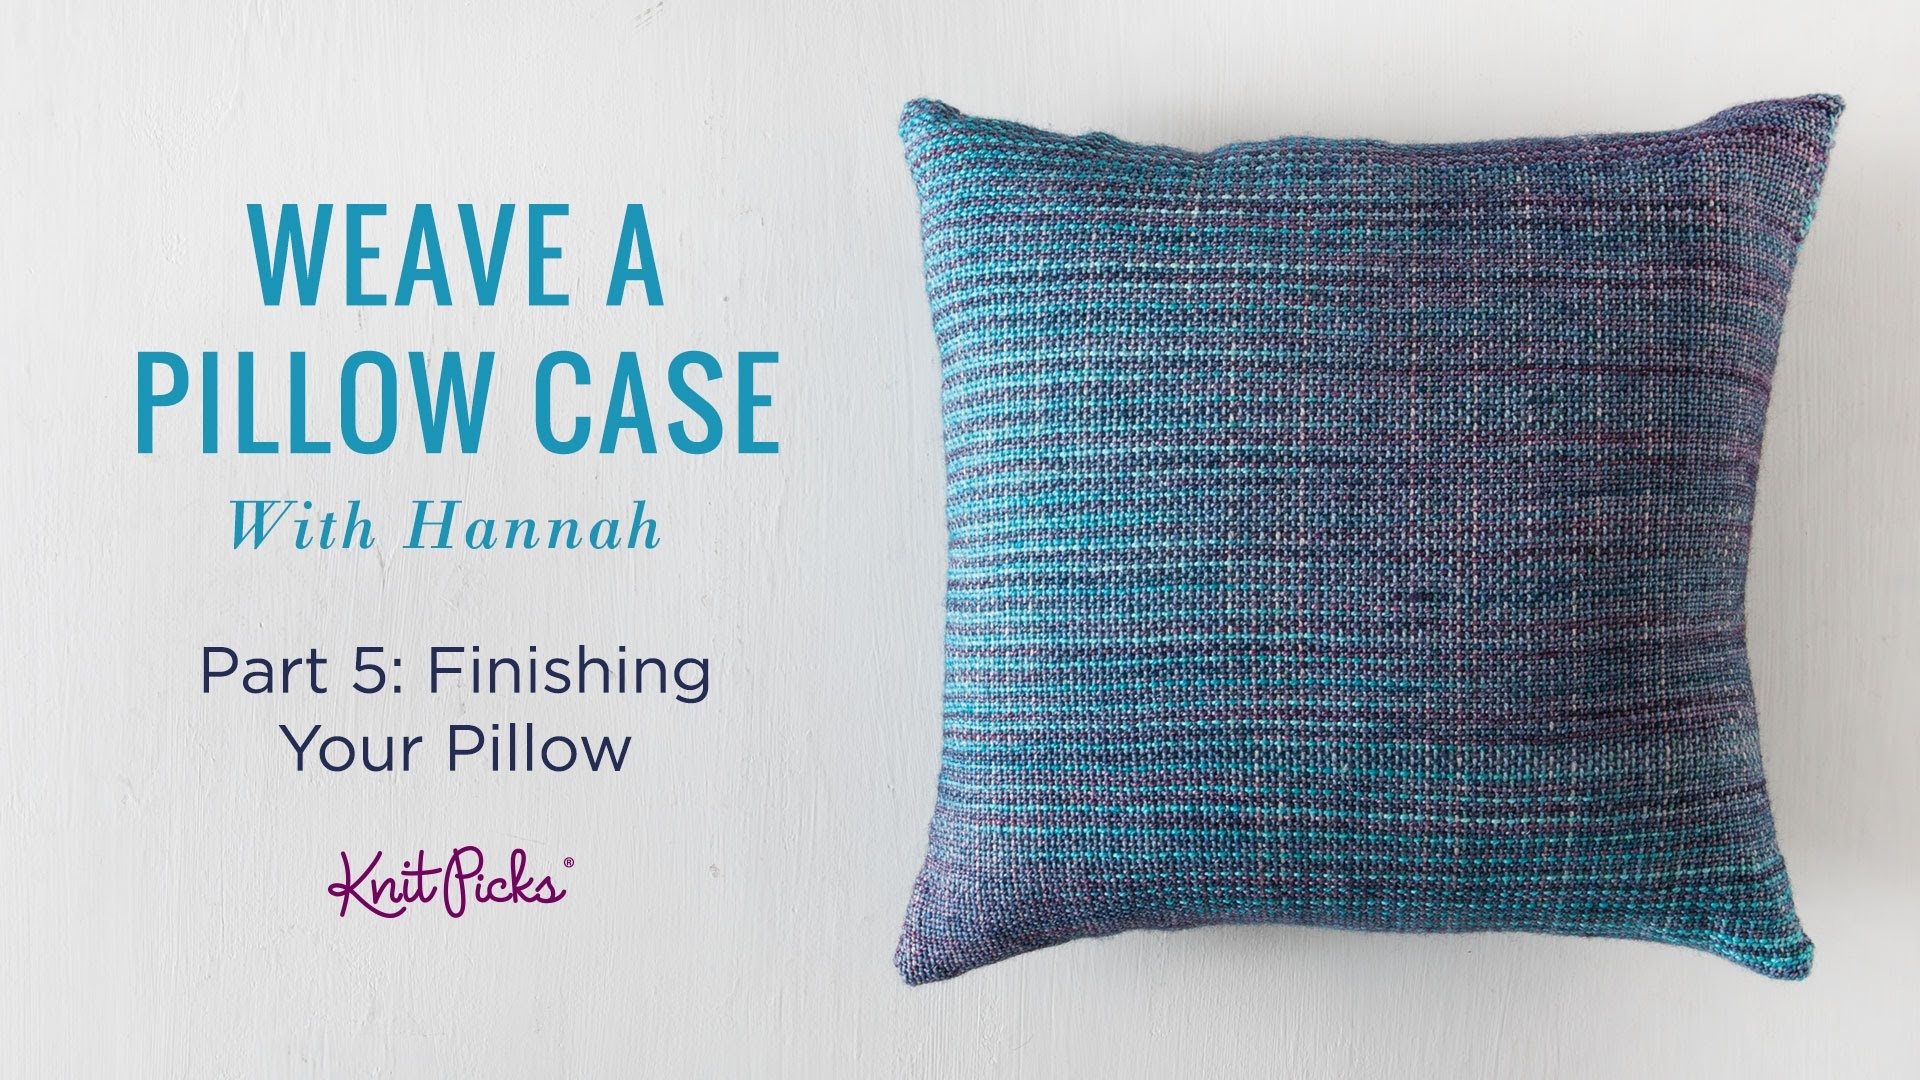 Learn to Weave a Pillow Case - Part 5 - Finishing